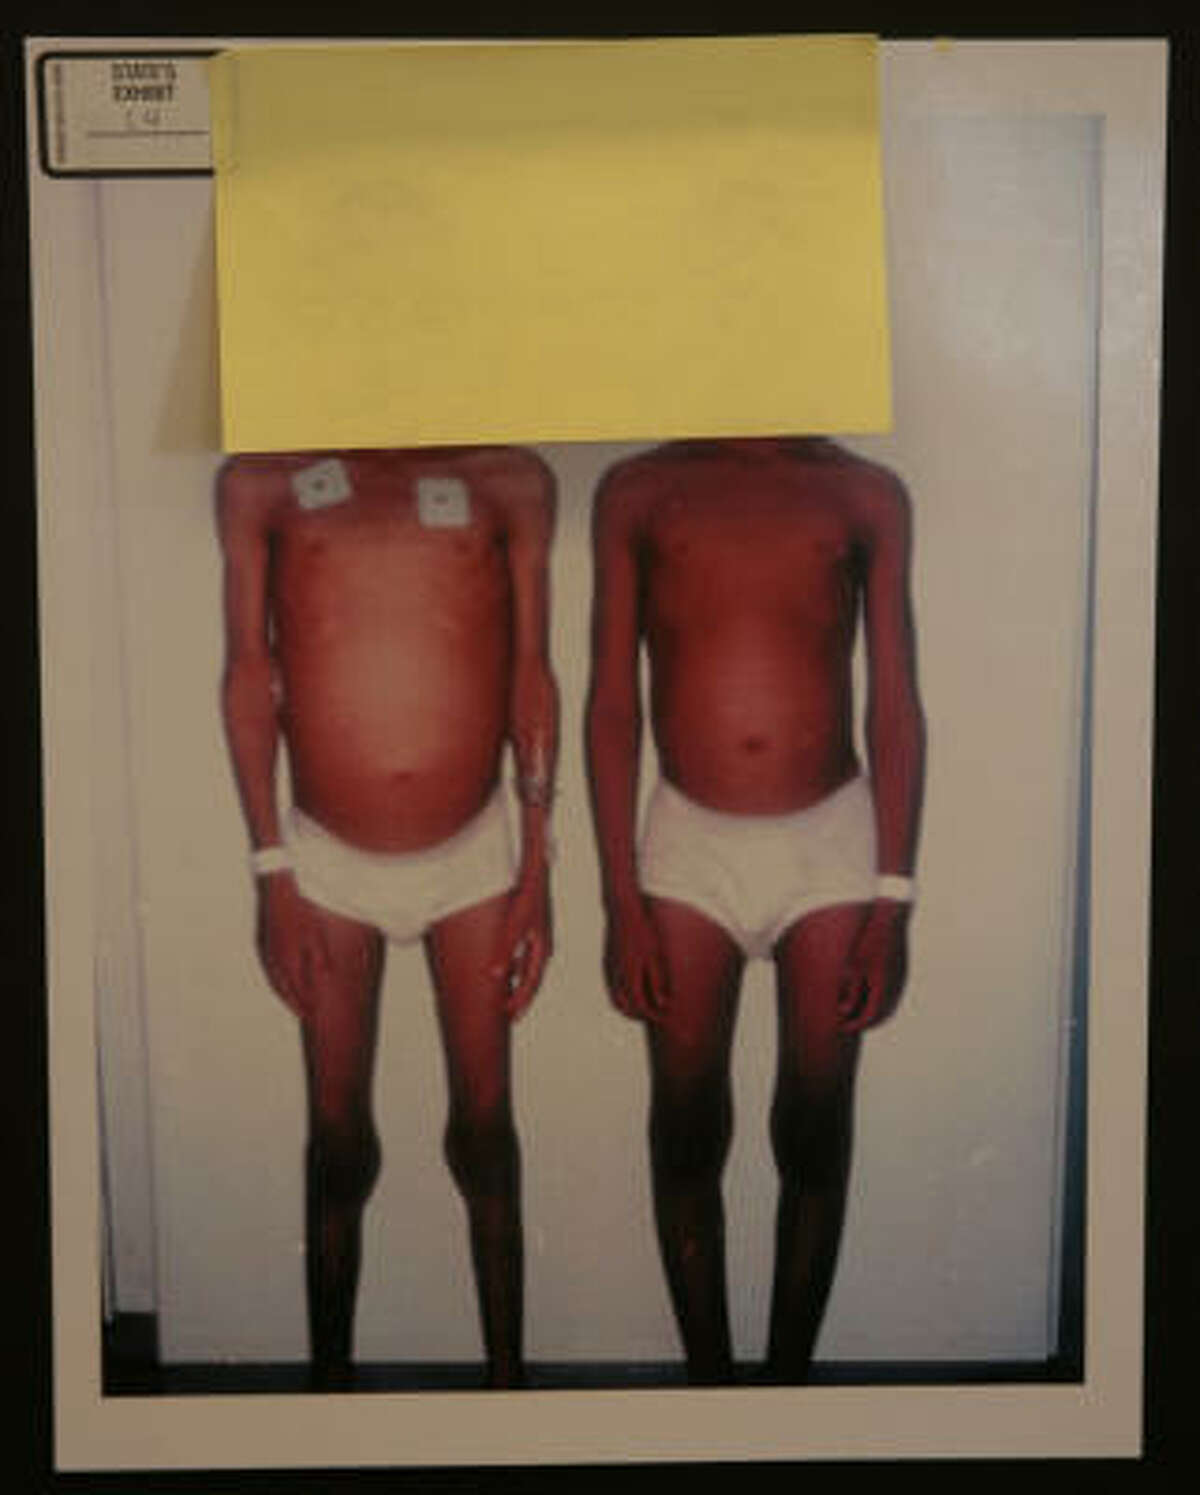 Evidence photos show the emaciated condition of the two brothers.